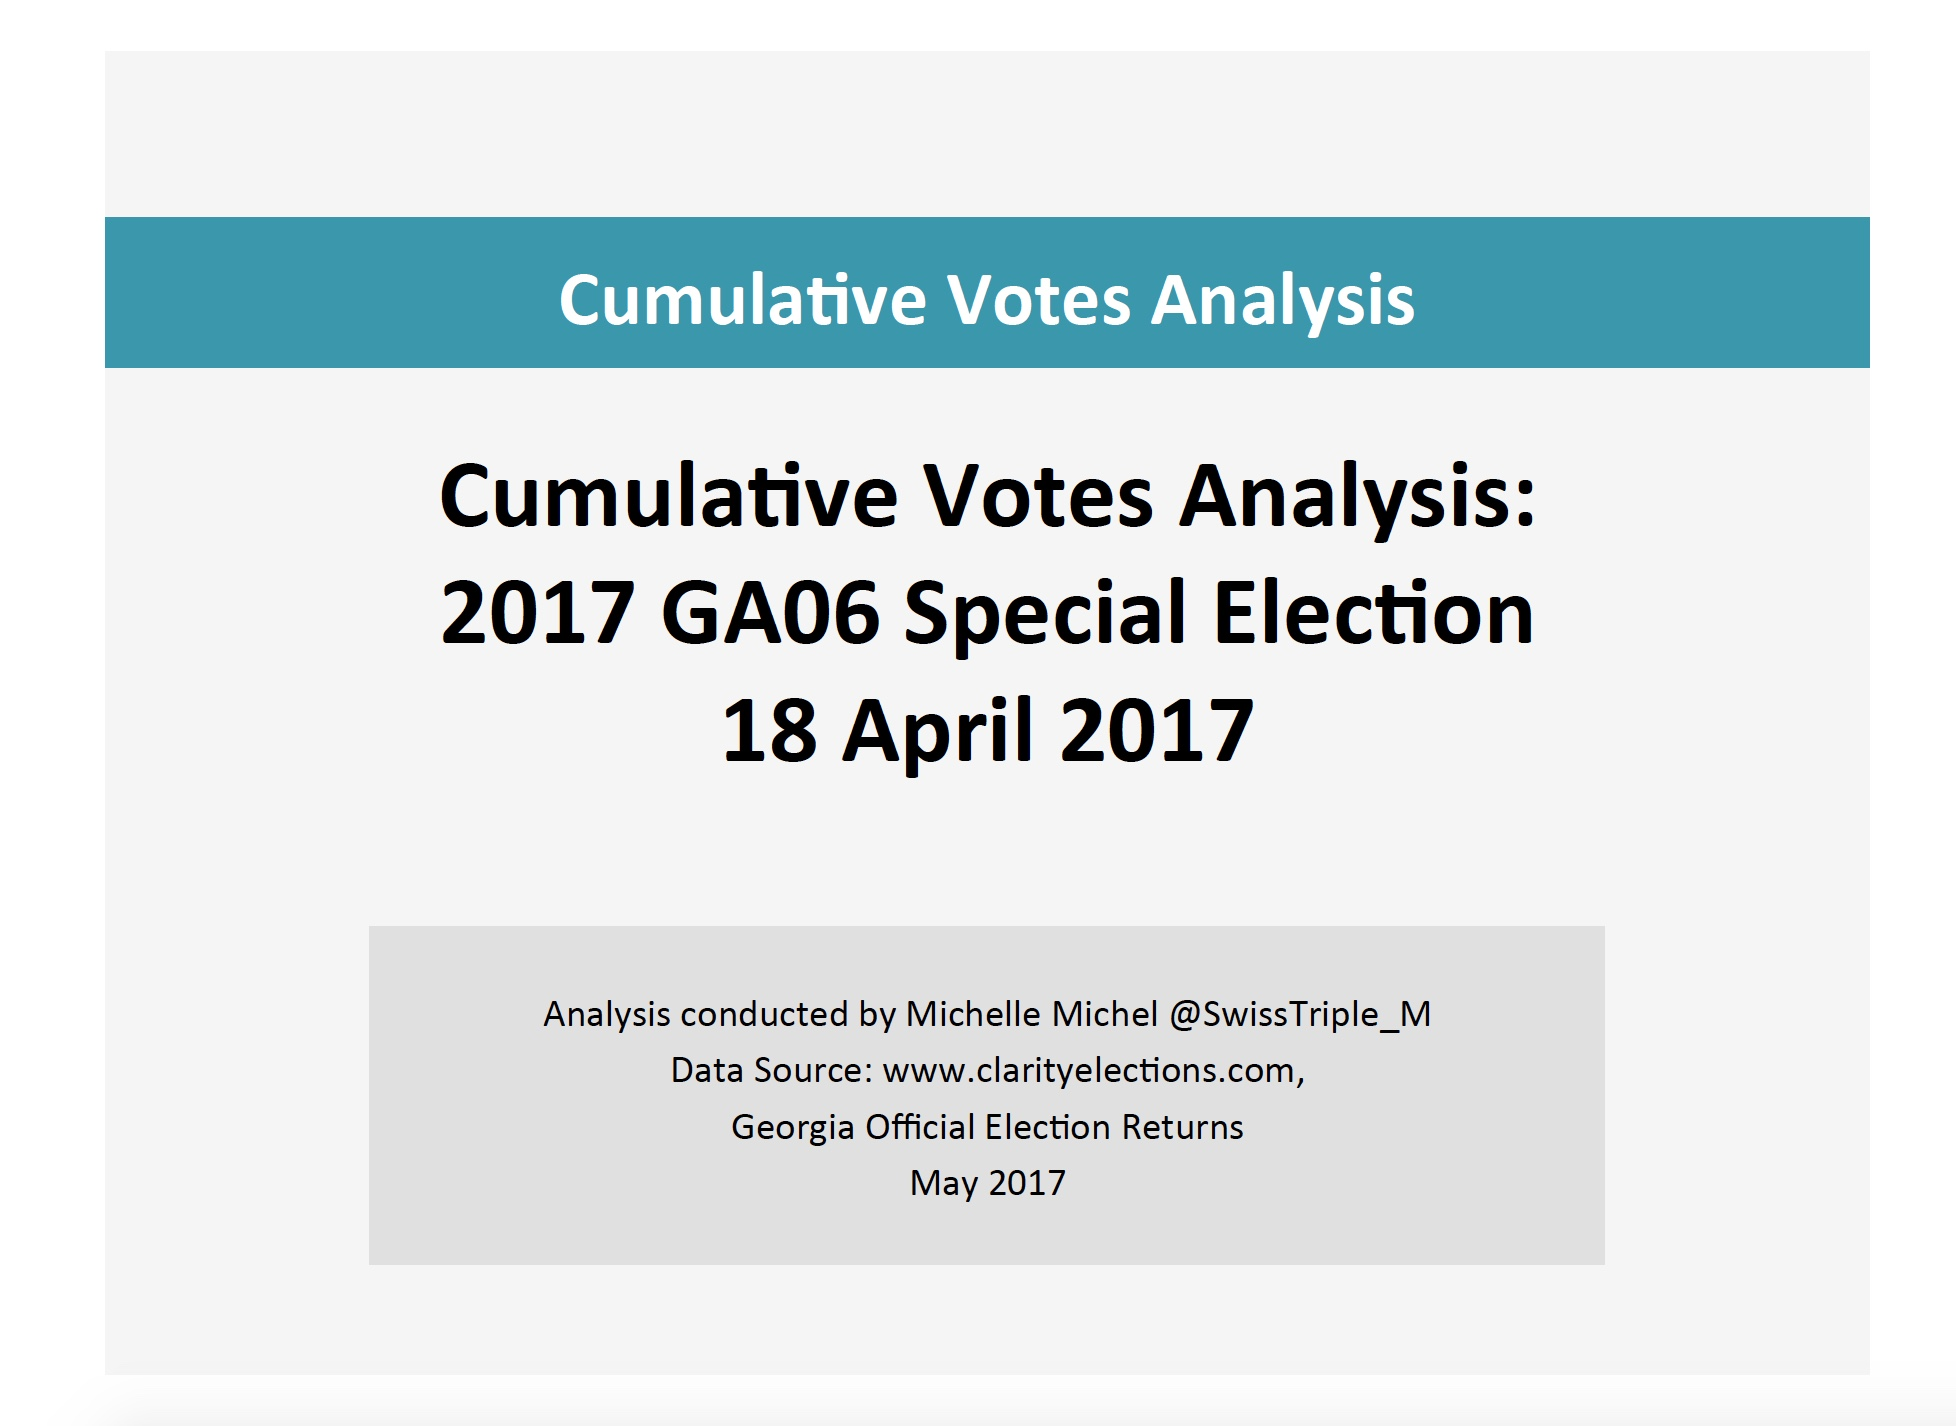 Cumulative Votes Analysis Cover